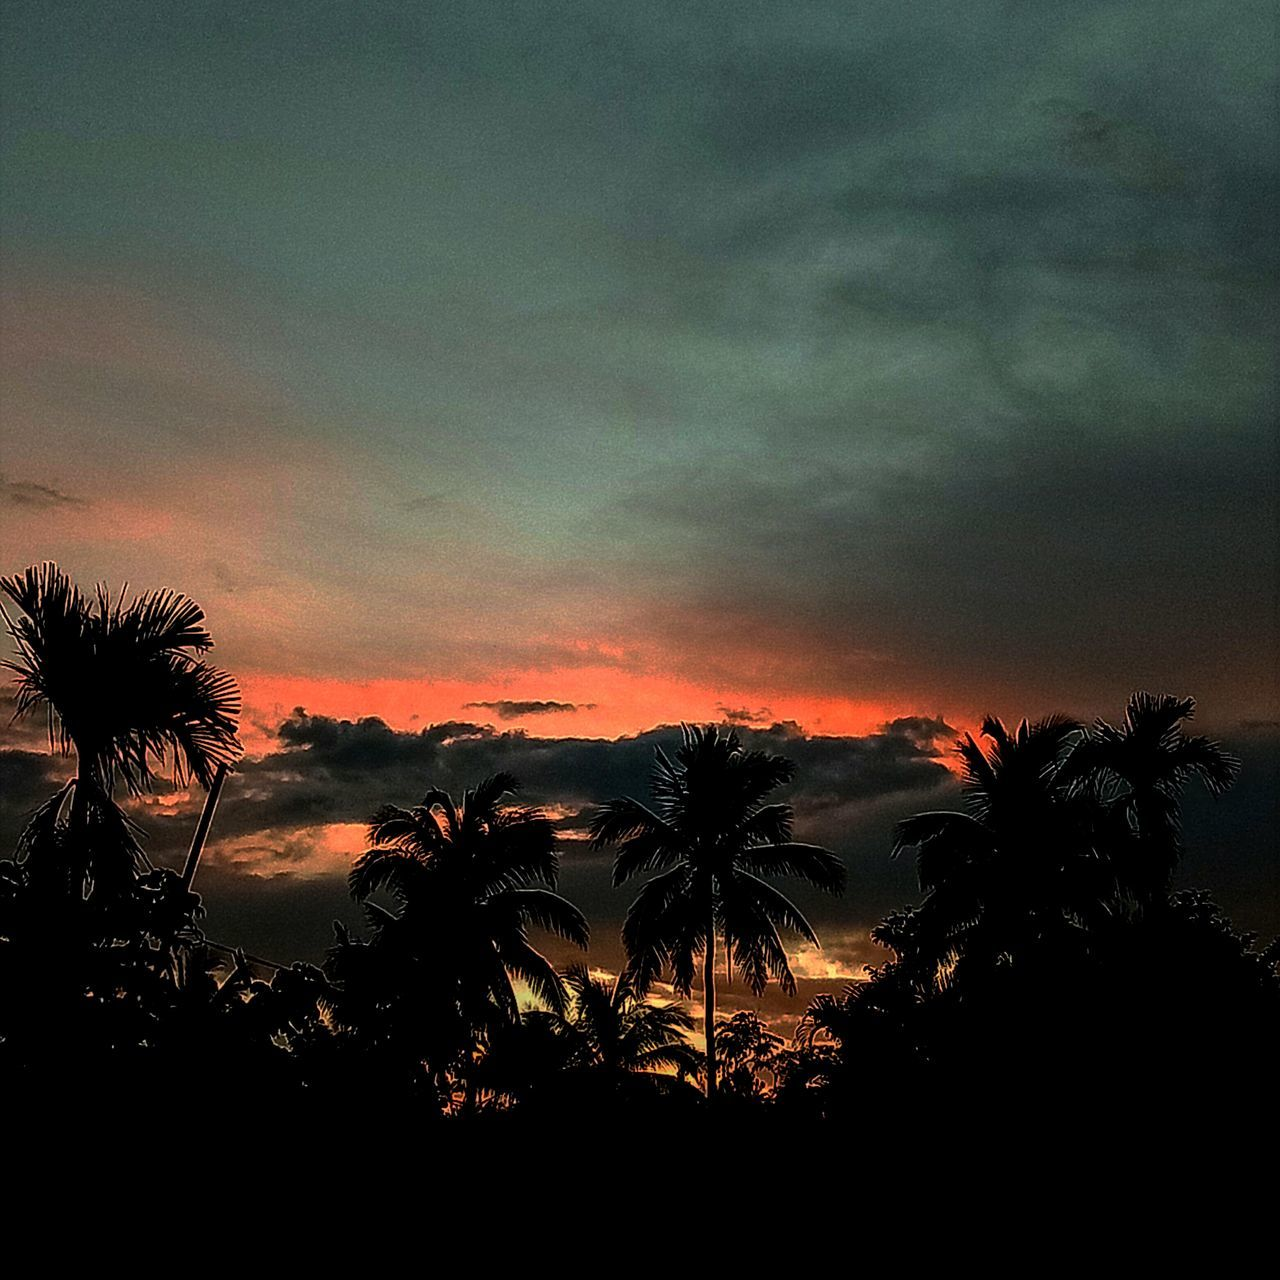 palm tree, tree, silhouette, sky, sunset, tranquility, beauty in nature, nature, tranquil scene, scenics, no people, cloud - sky, growth, outdoors